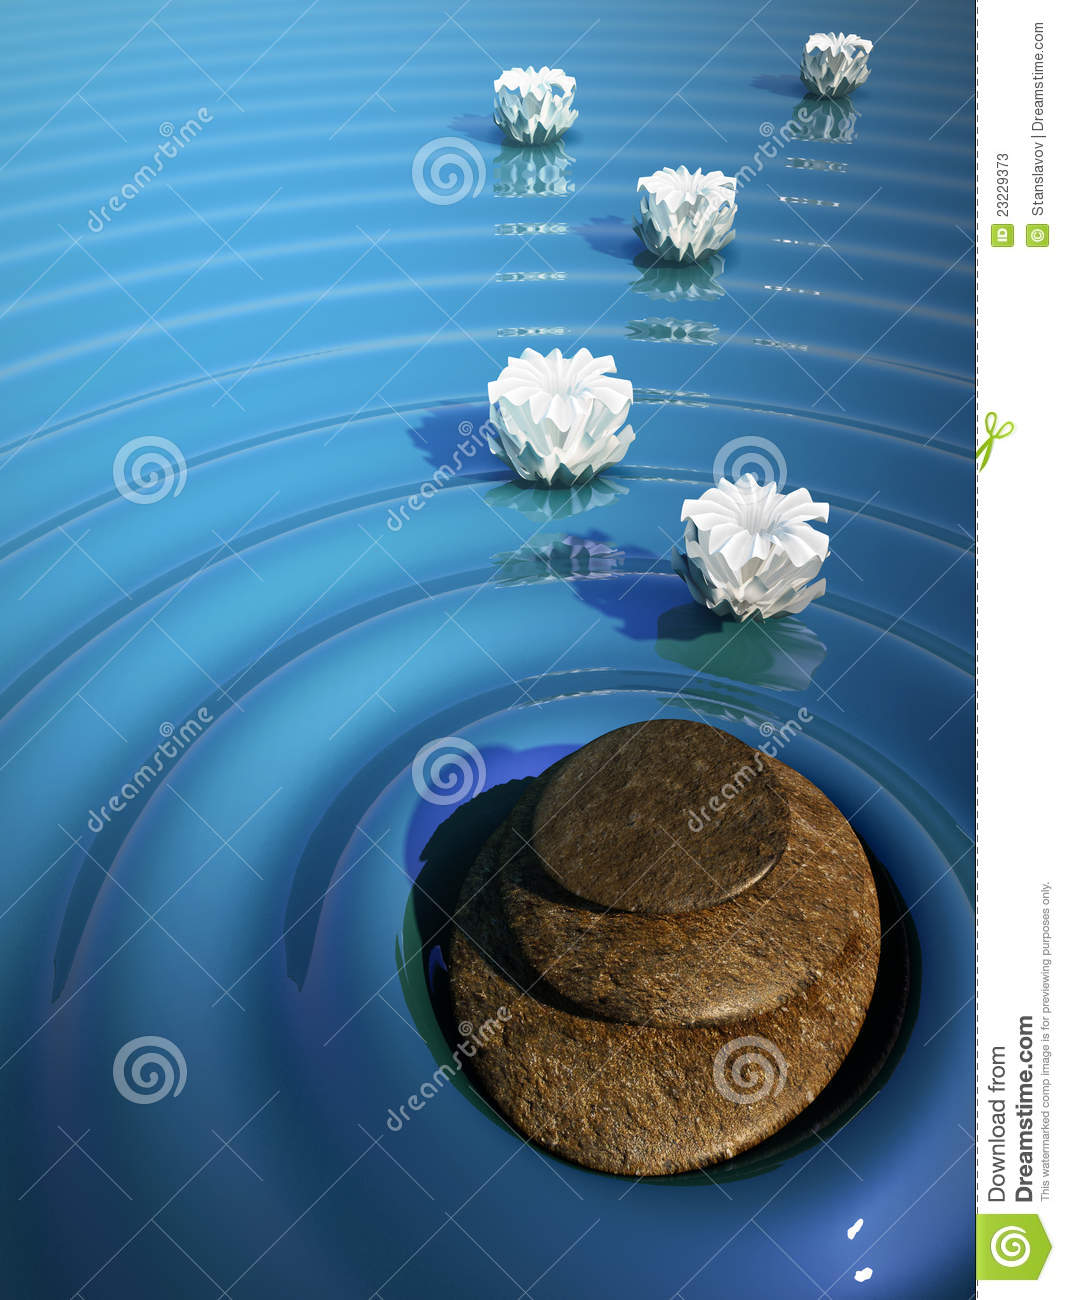 Relax Stone: Spa Relax Stone Zen Water Volcano Lily Stock Photos